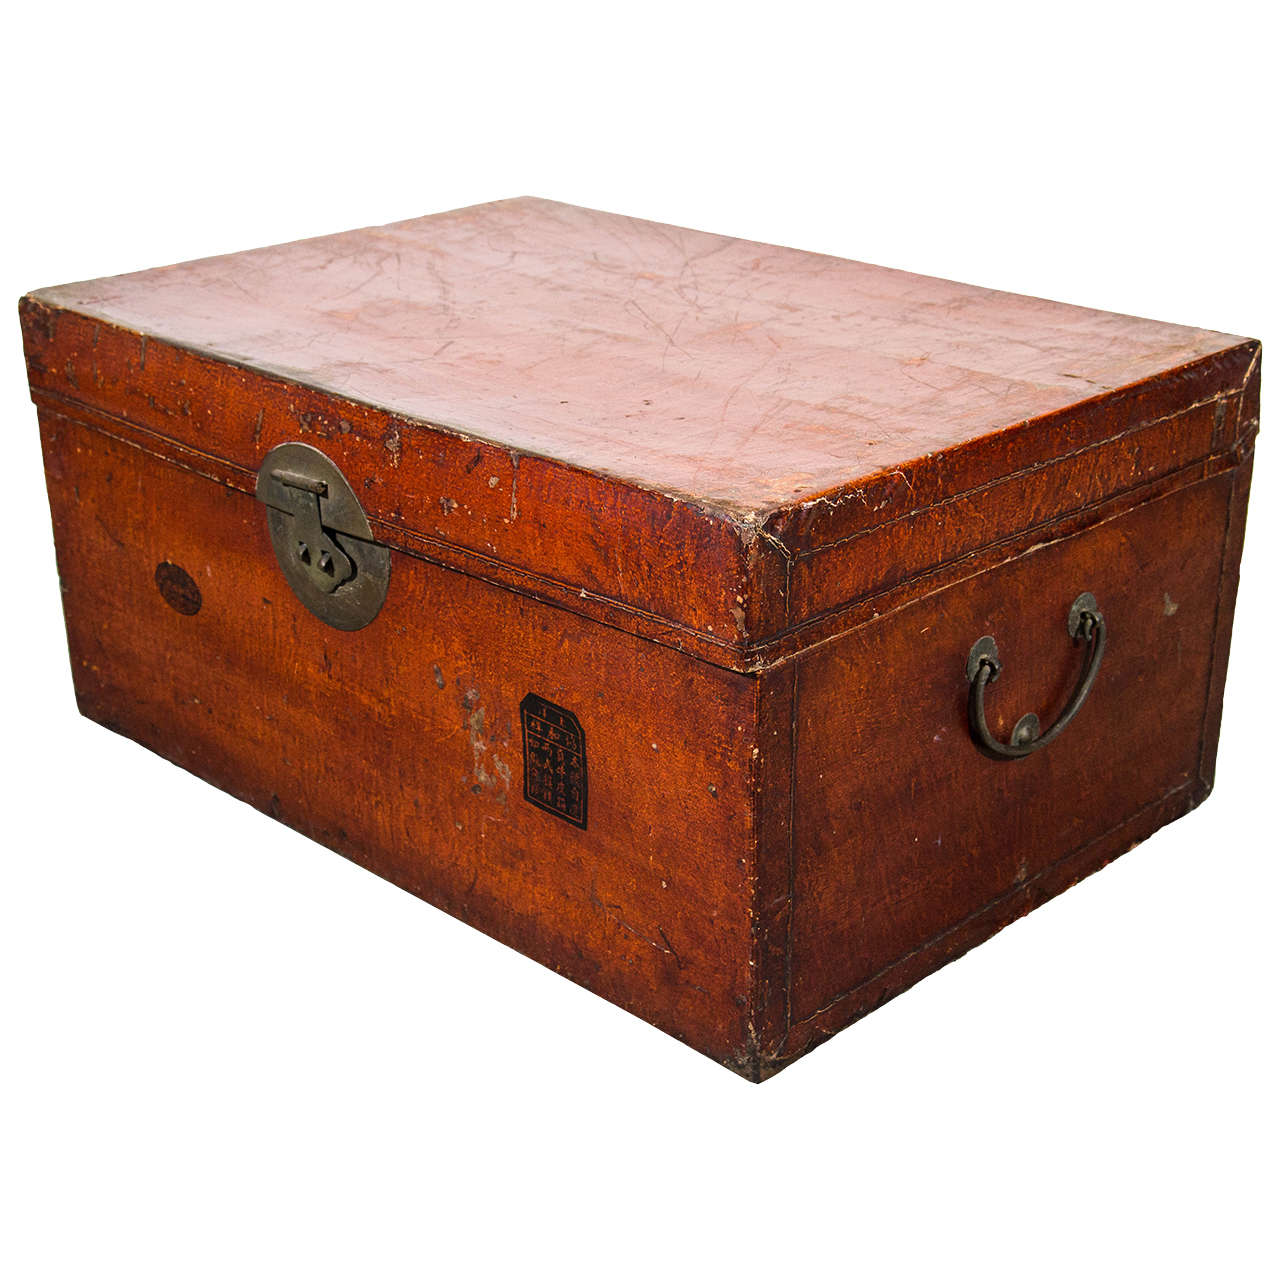 Antique chinese leather trunk - Leather chests and trunks ...